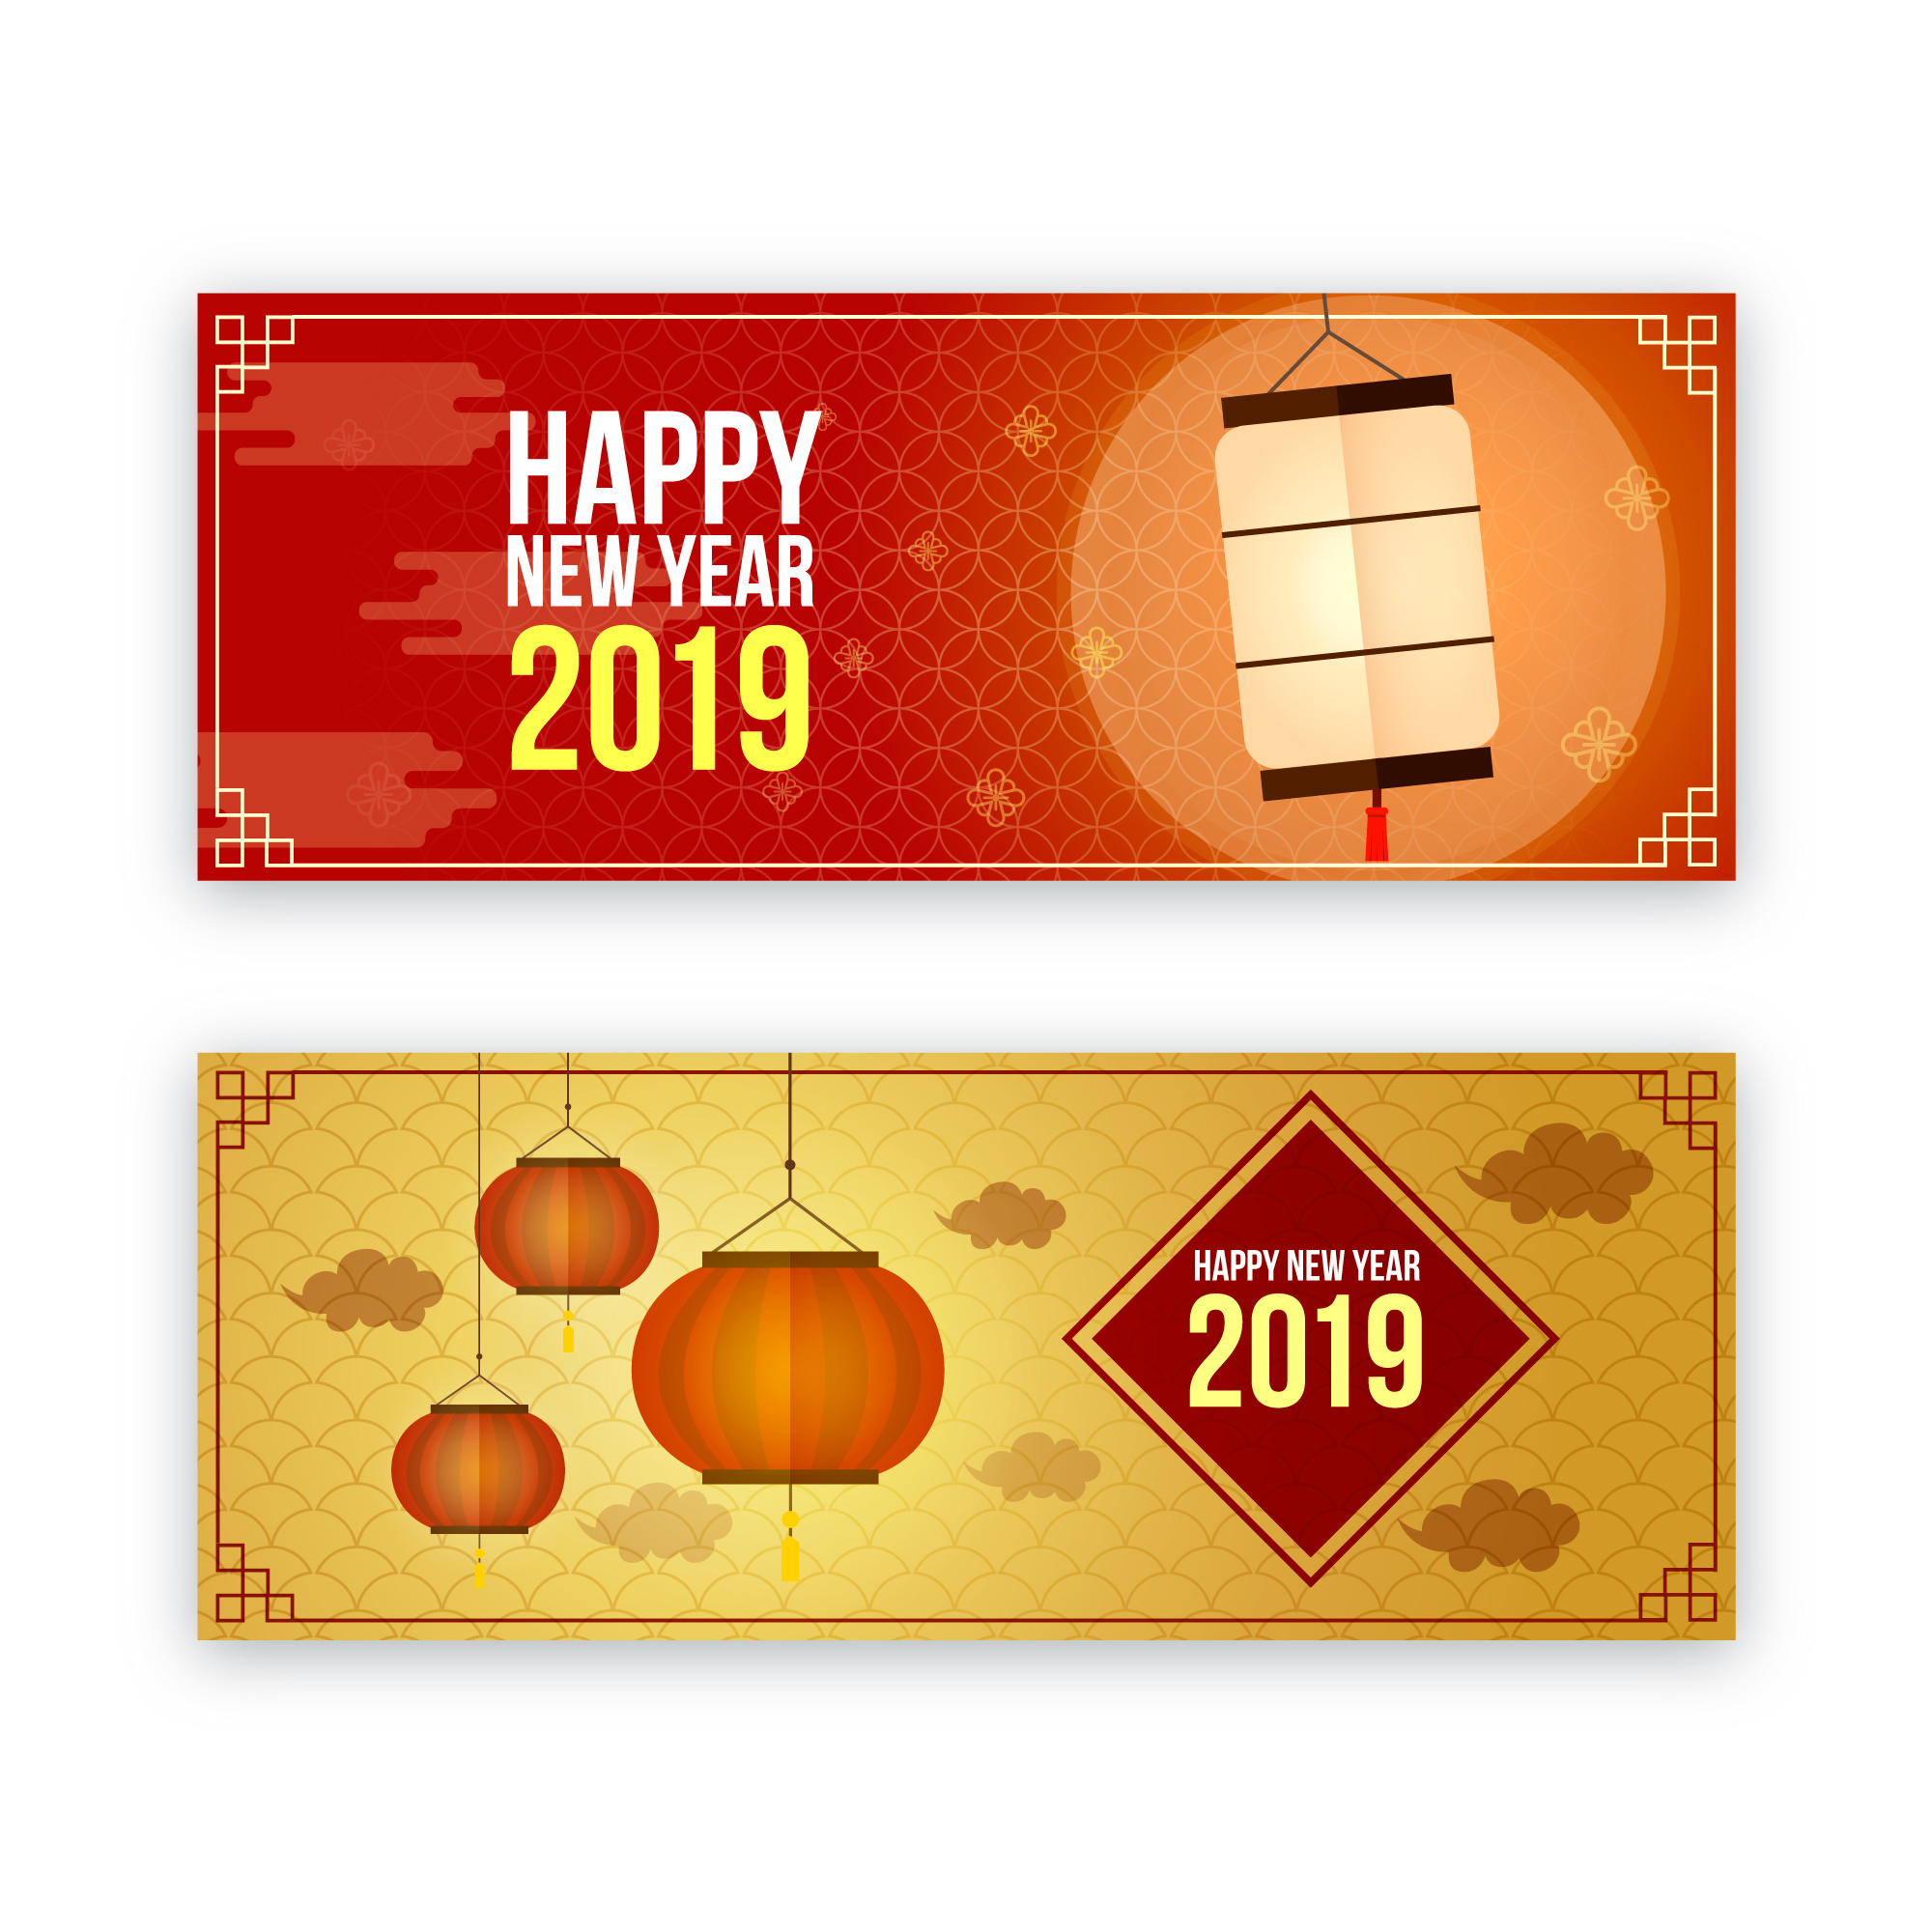 2019新年农历猪年贺卡矢量素材模板 2019 New Year Lunar Year Of The Pig Greeting Card Vector Material Template插图(6)